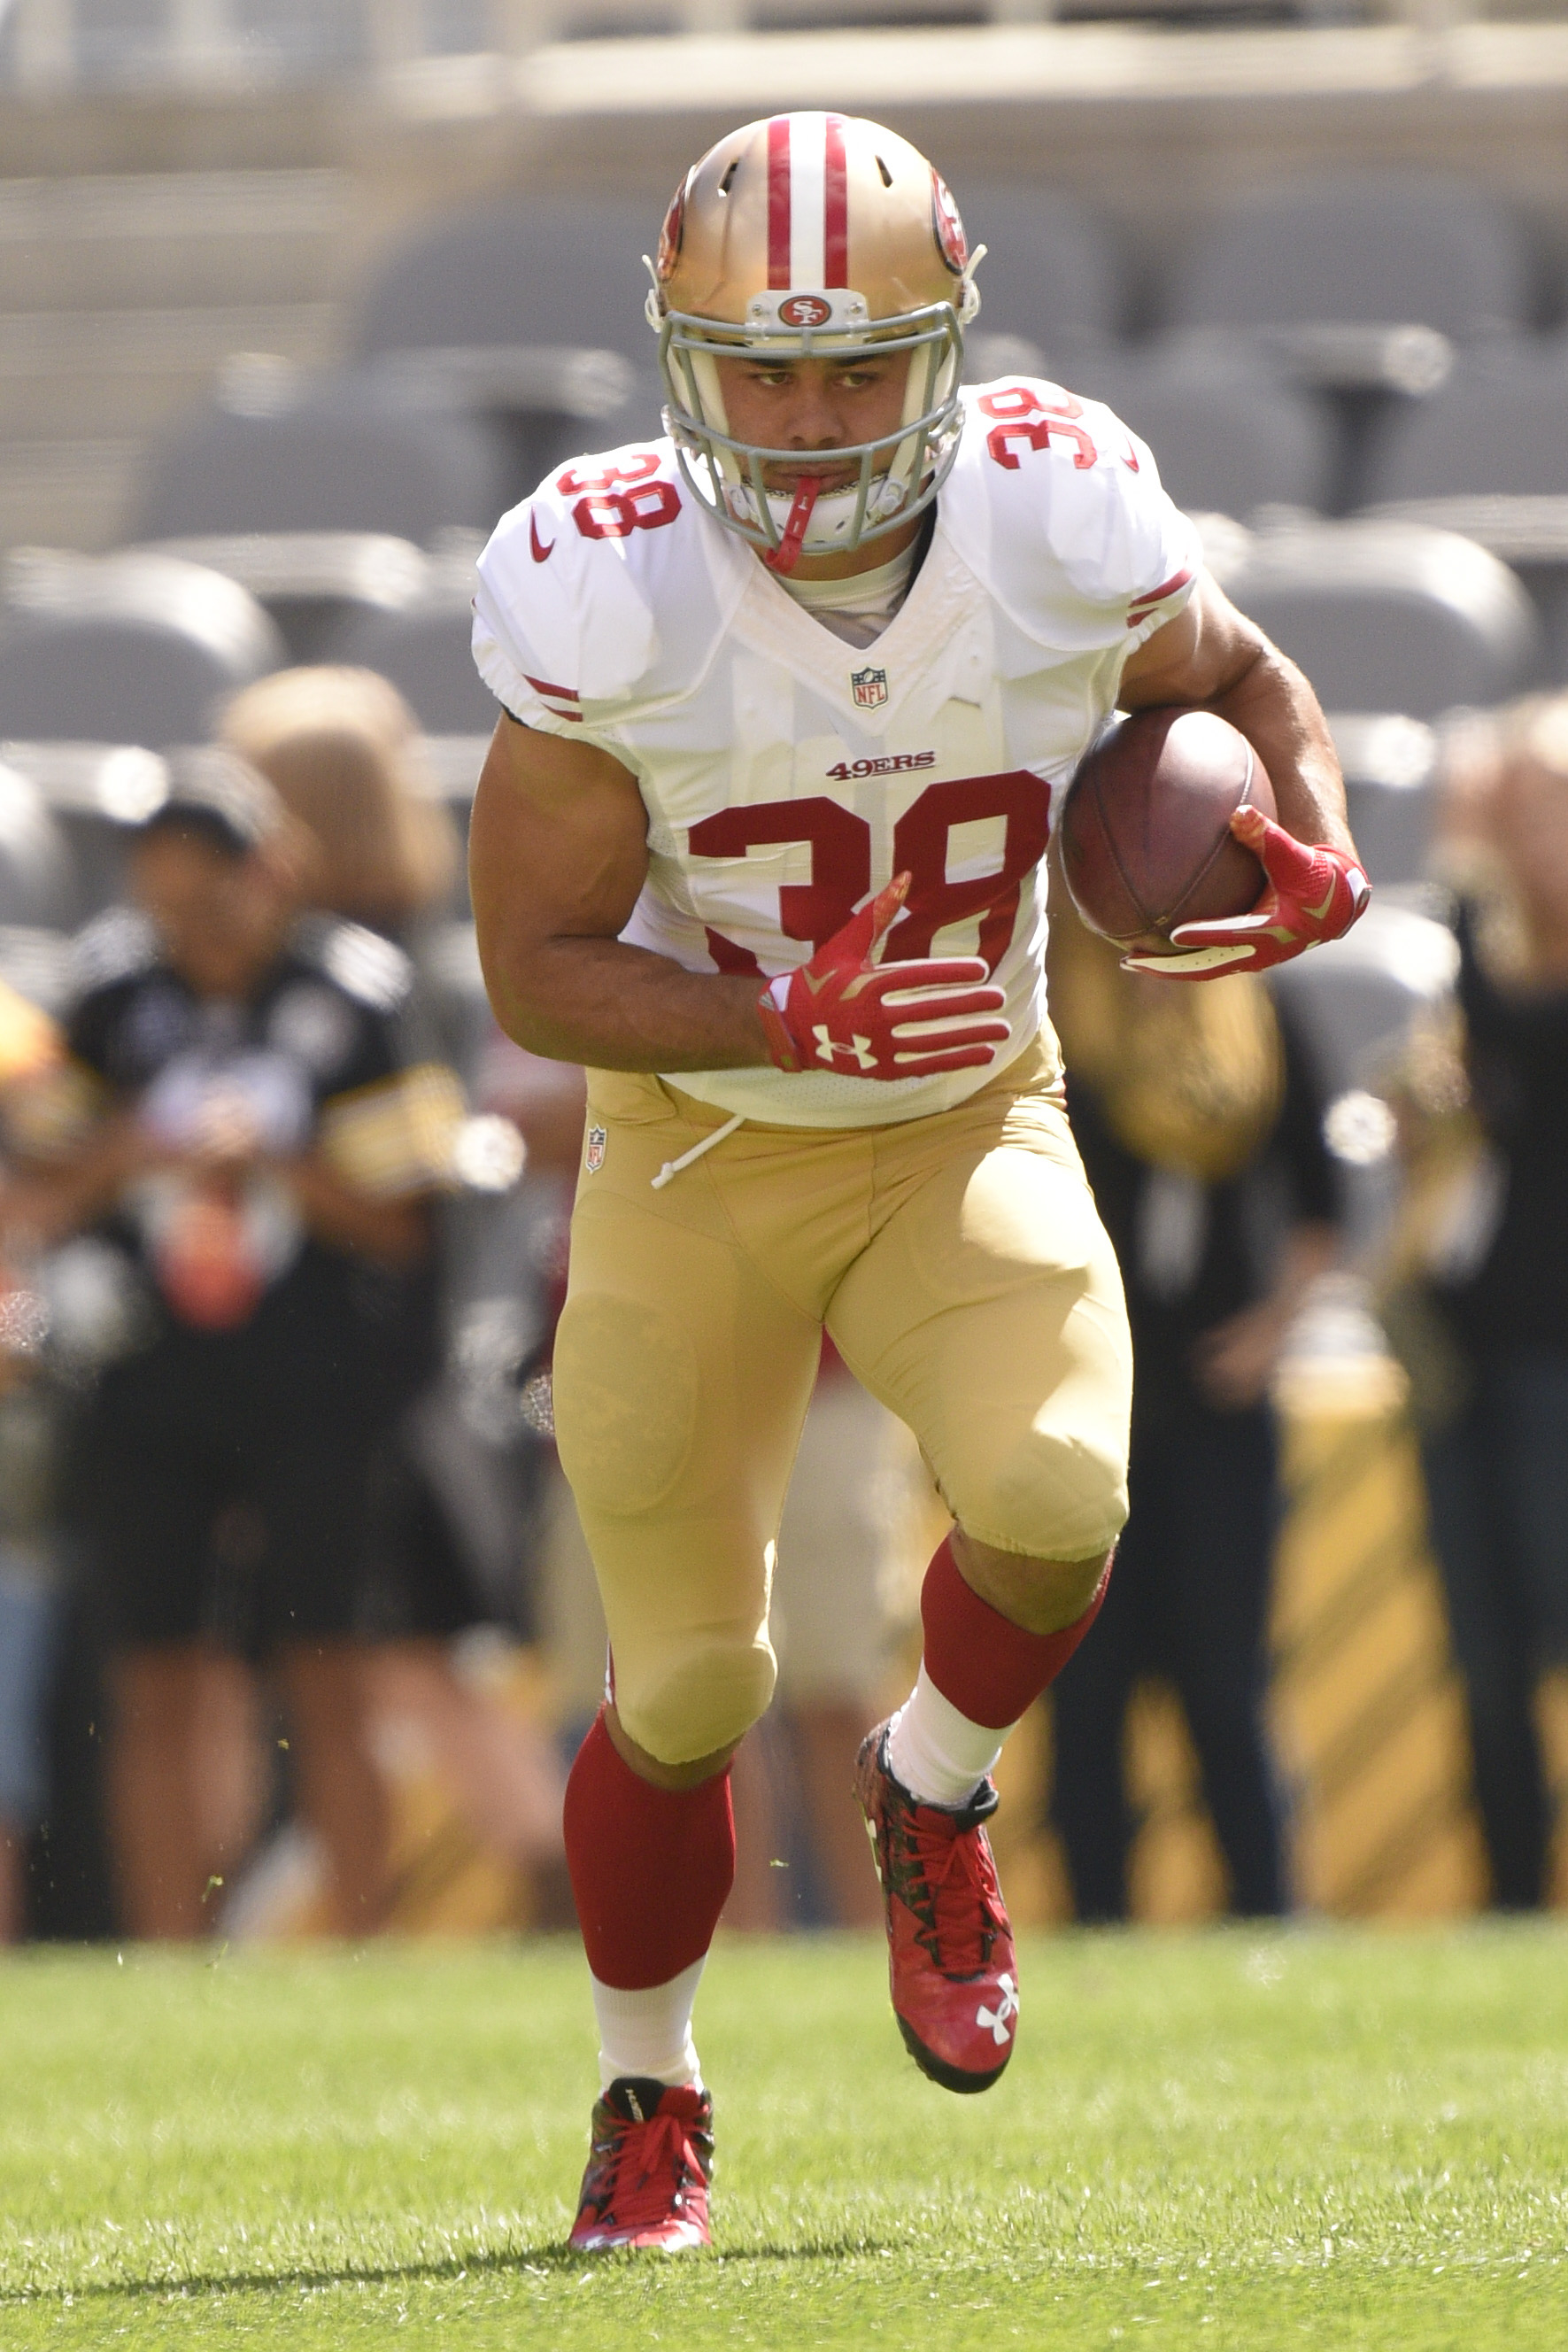 San Francisco 49ers running back Jarryd Hayne (38) warms up before an NFL football game against the Pittsburgh Steelers, Sunday, Sept. 20, 2015 in Pittsburgh. (AP Photo/Keith Srakocic)